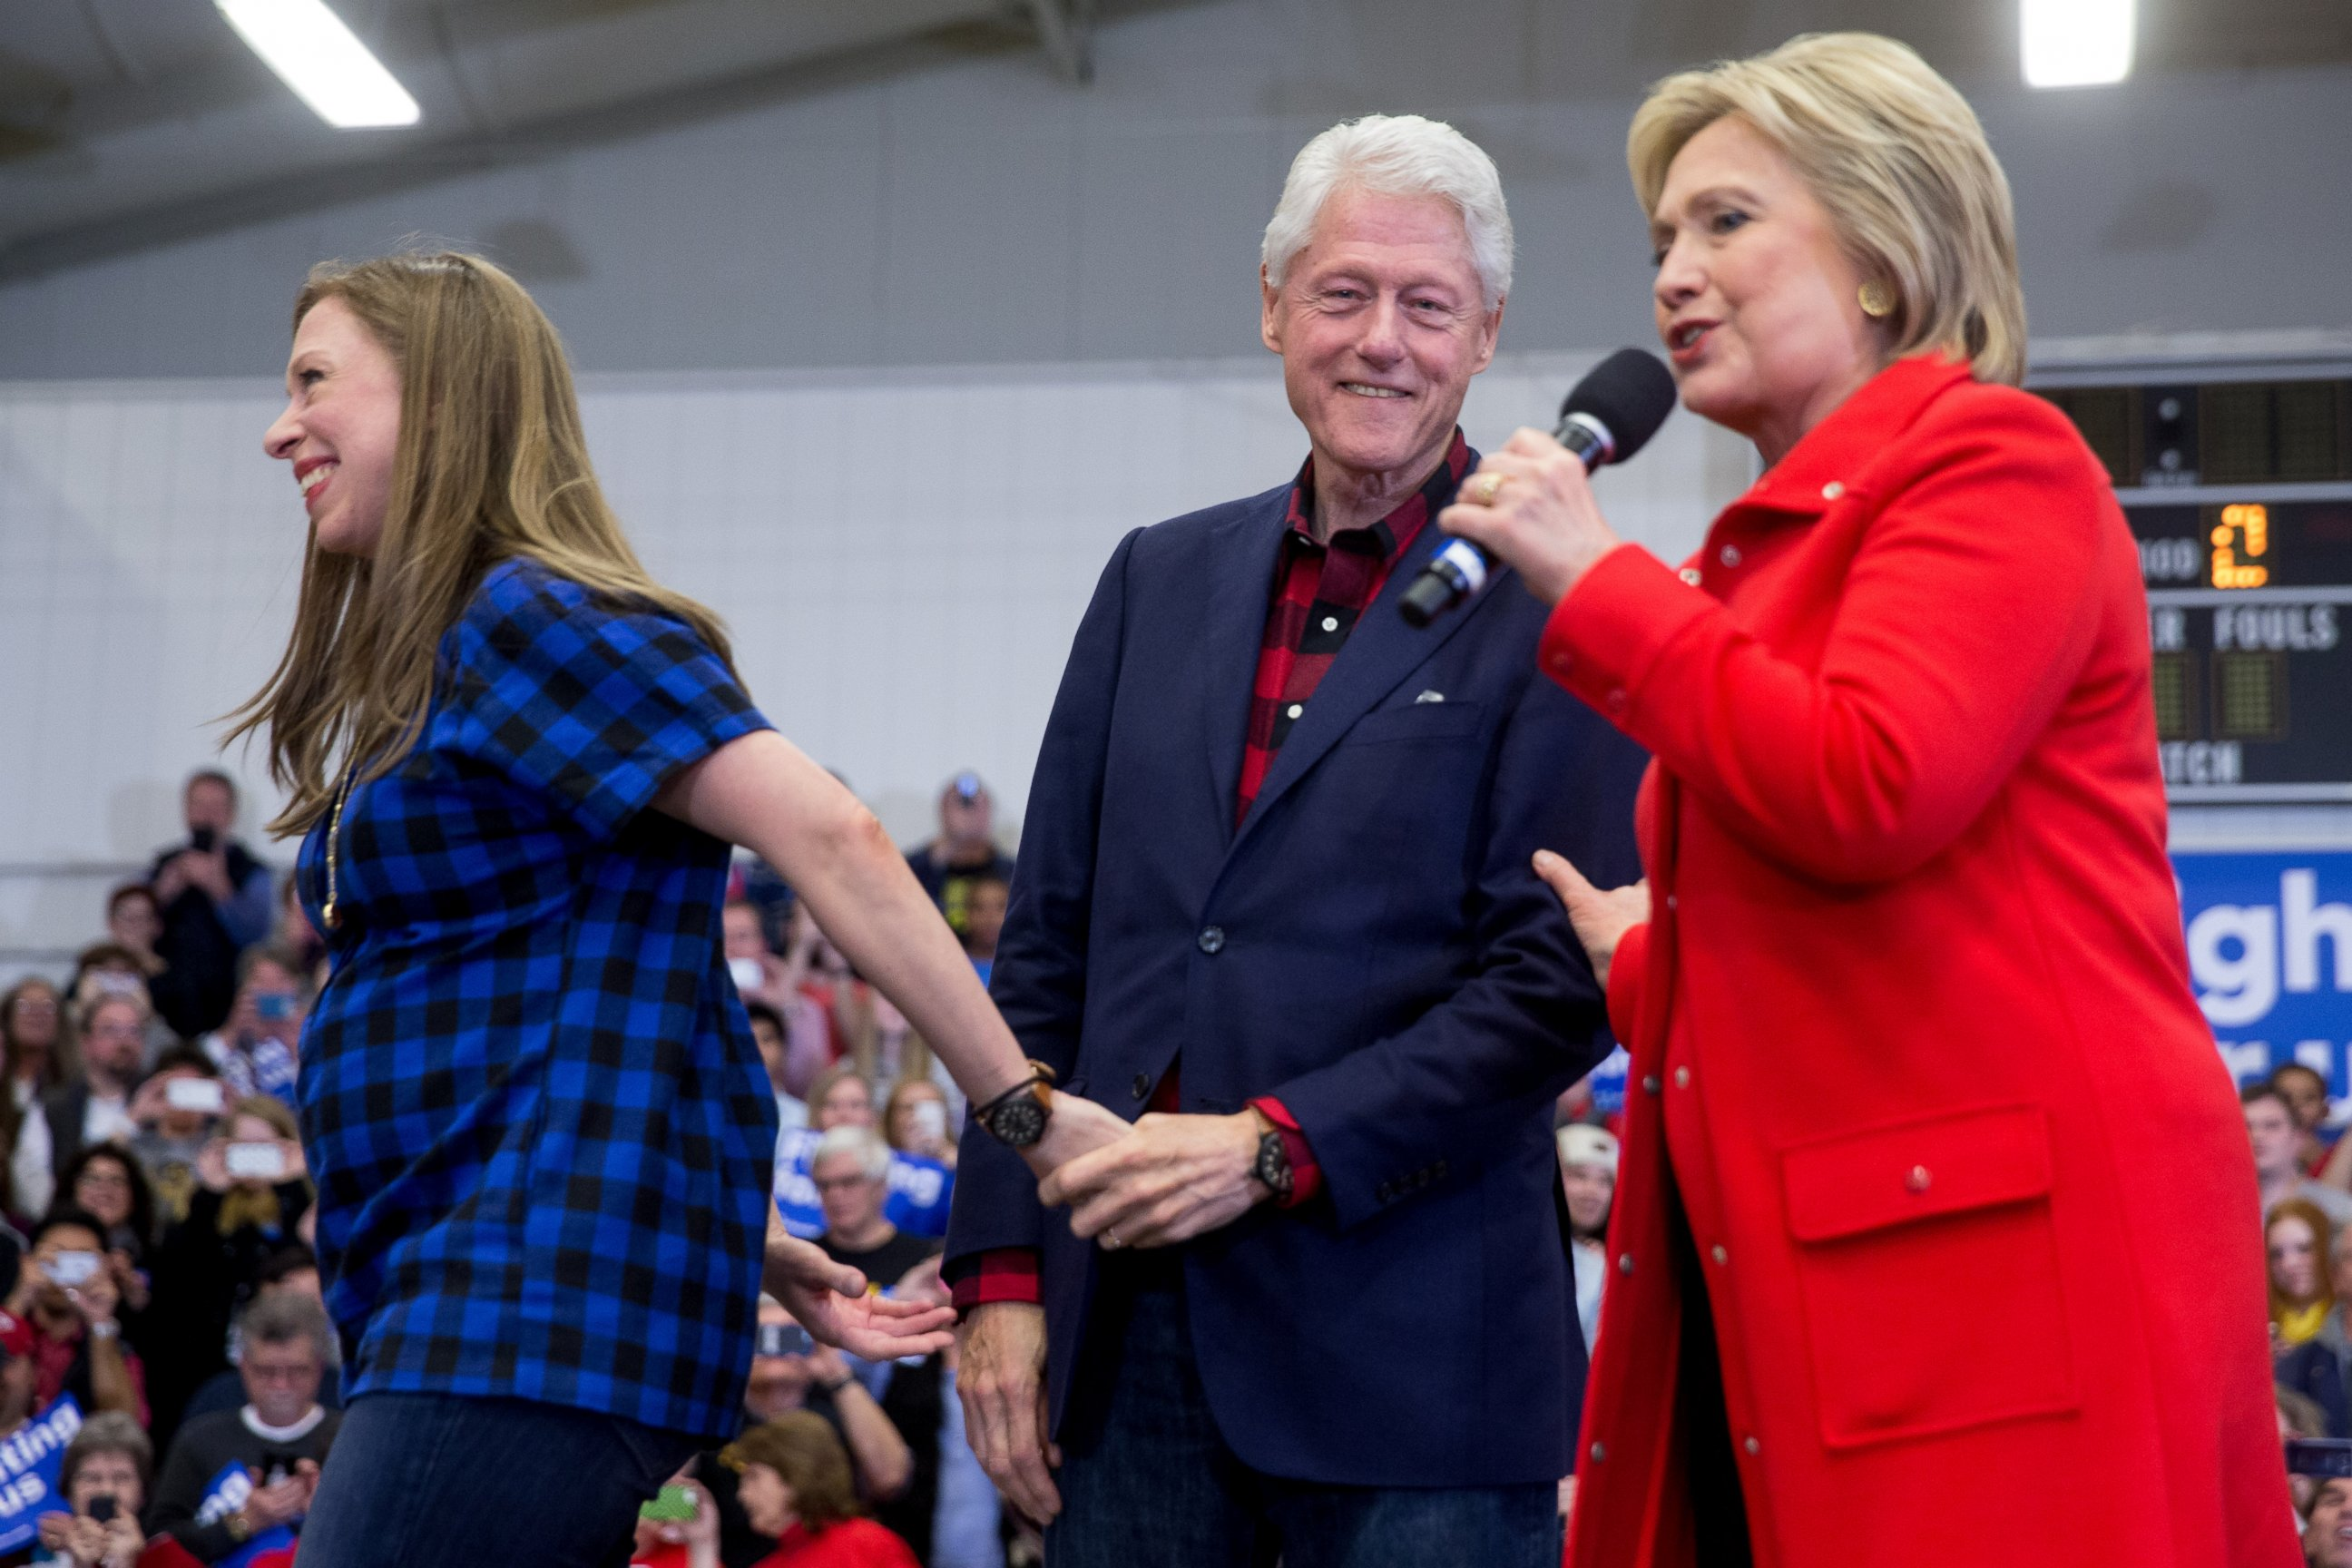 Chelsea Clinton Photos And Images Abc News